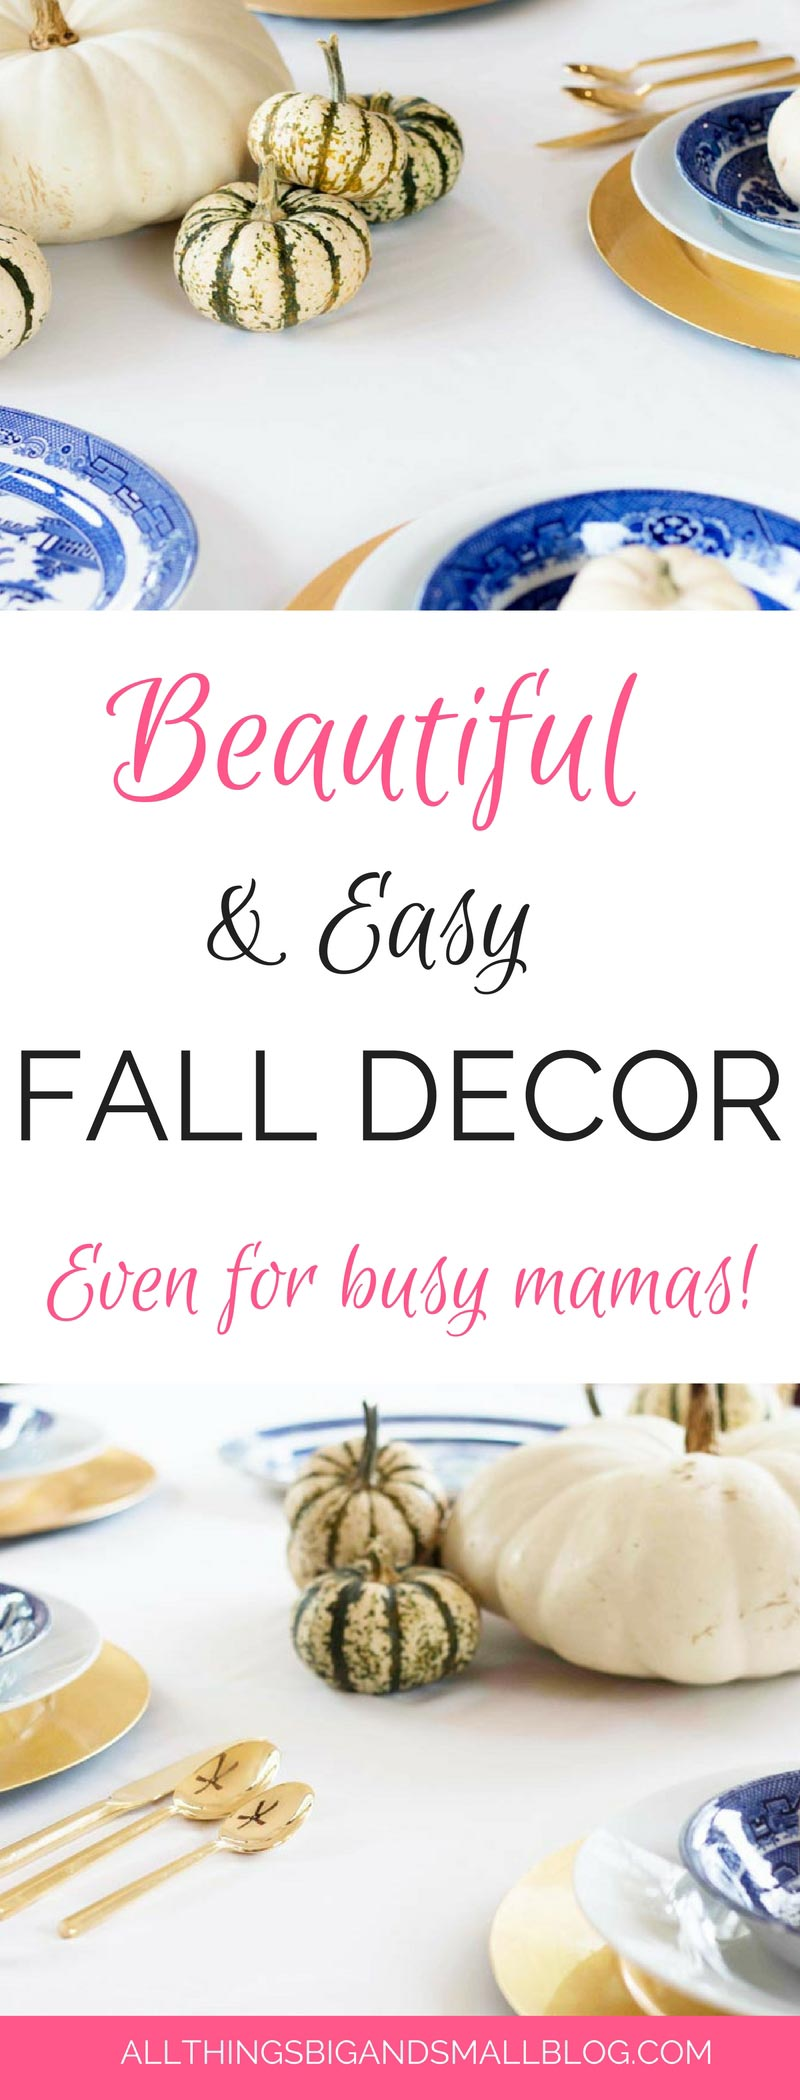 FALL DECOR that is EASY and beautiful! More budget friendly home decor from ALL THINGS BIG AND SMALL